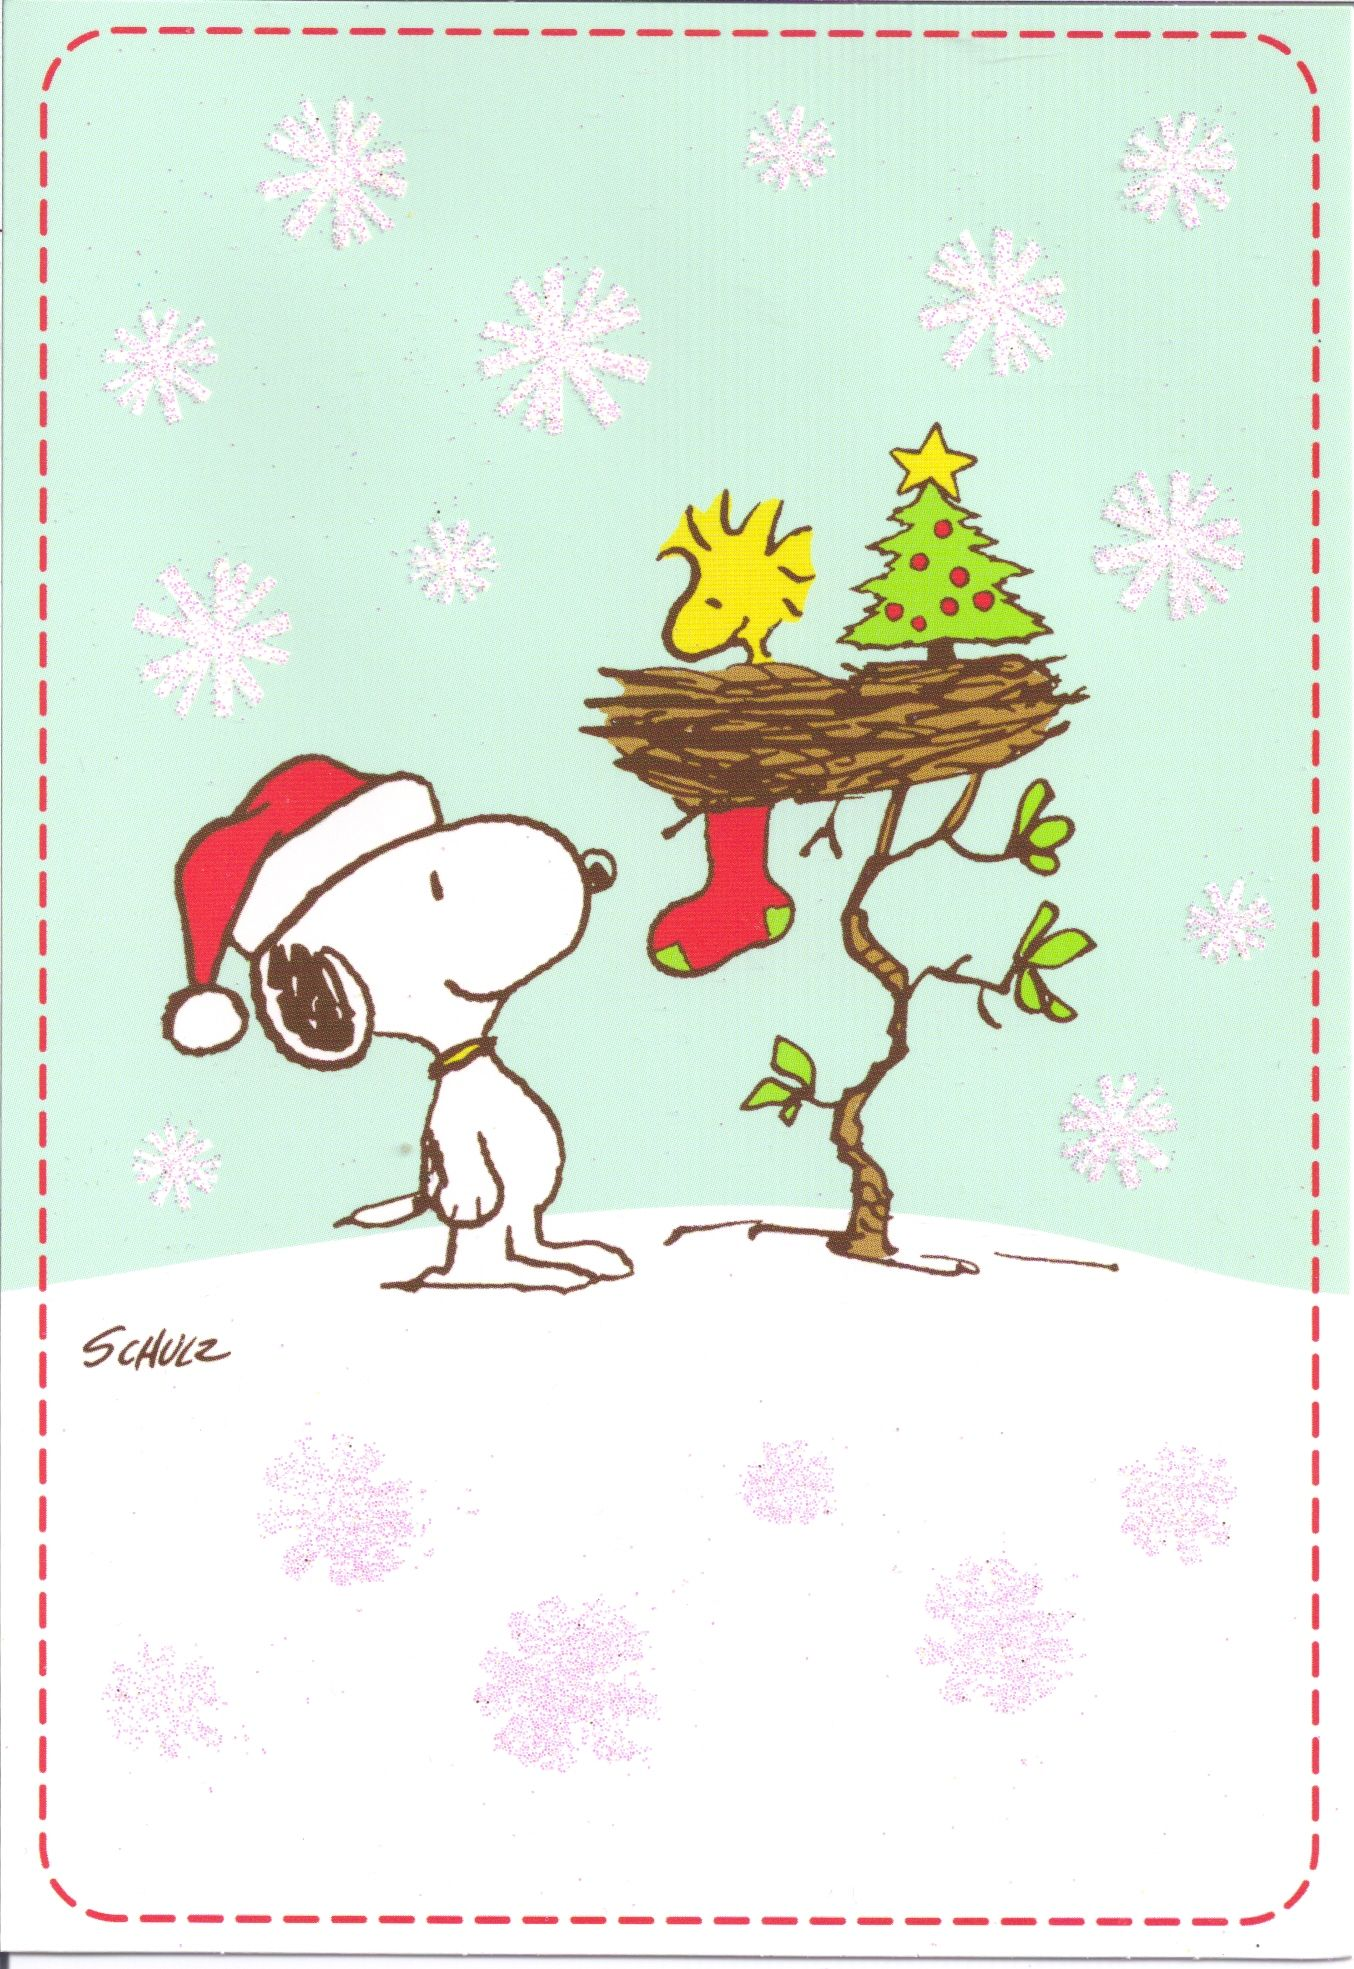 Pin by Maria Williard on Christmas Cards | Pinterest | Snoopy ...